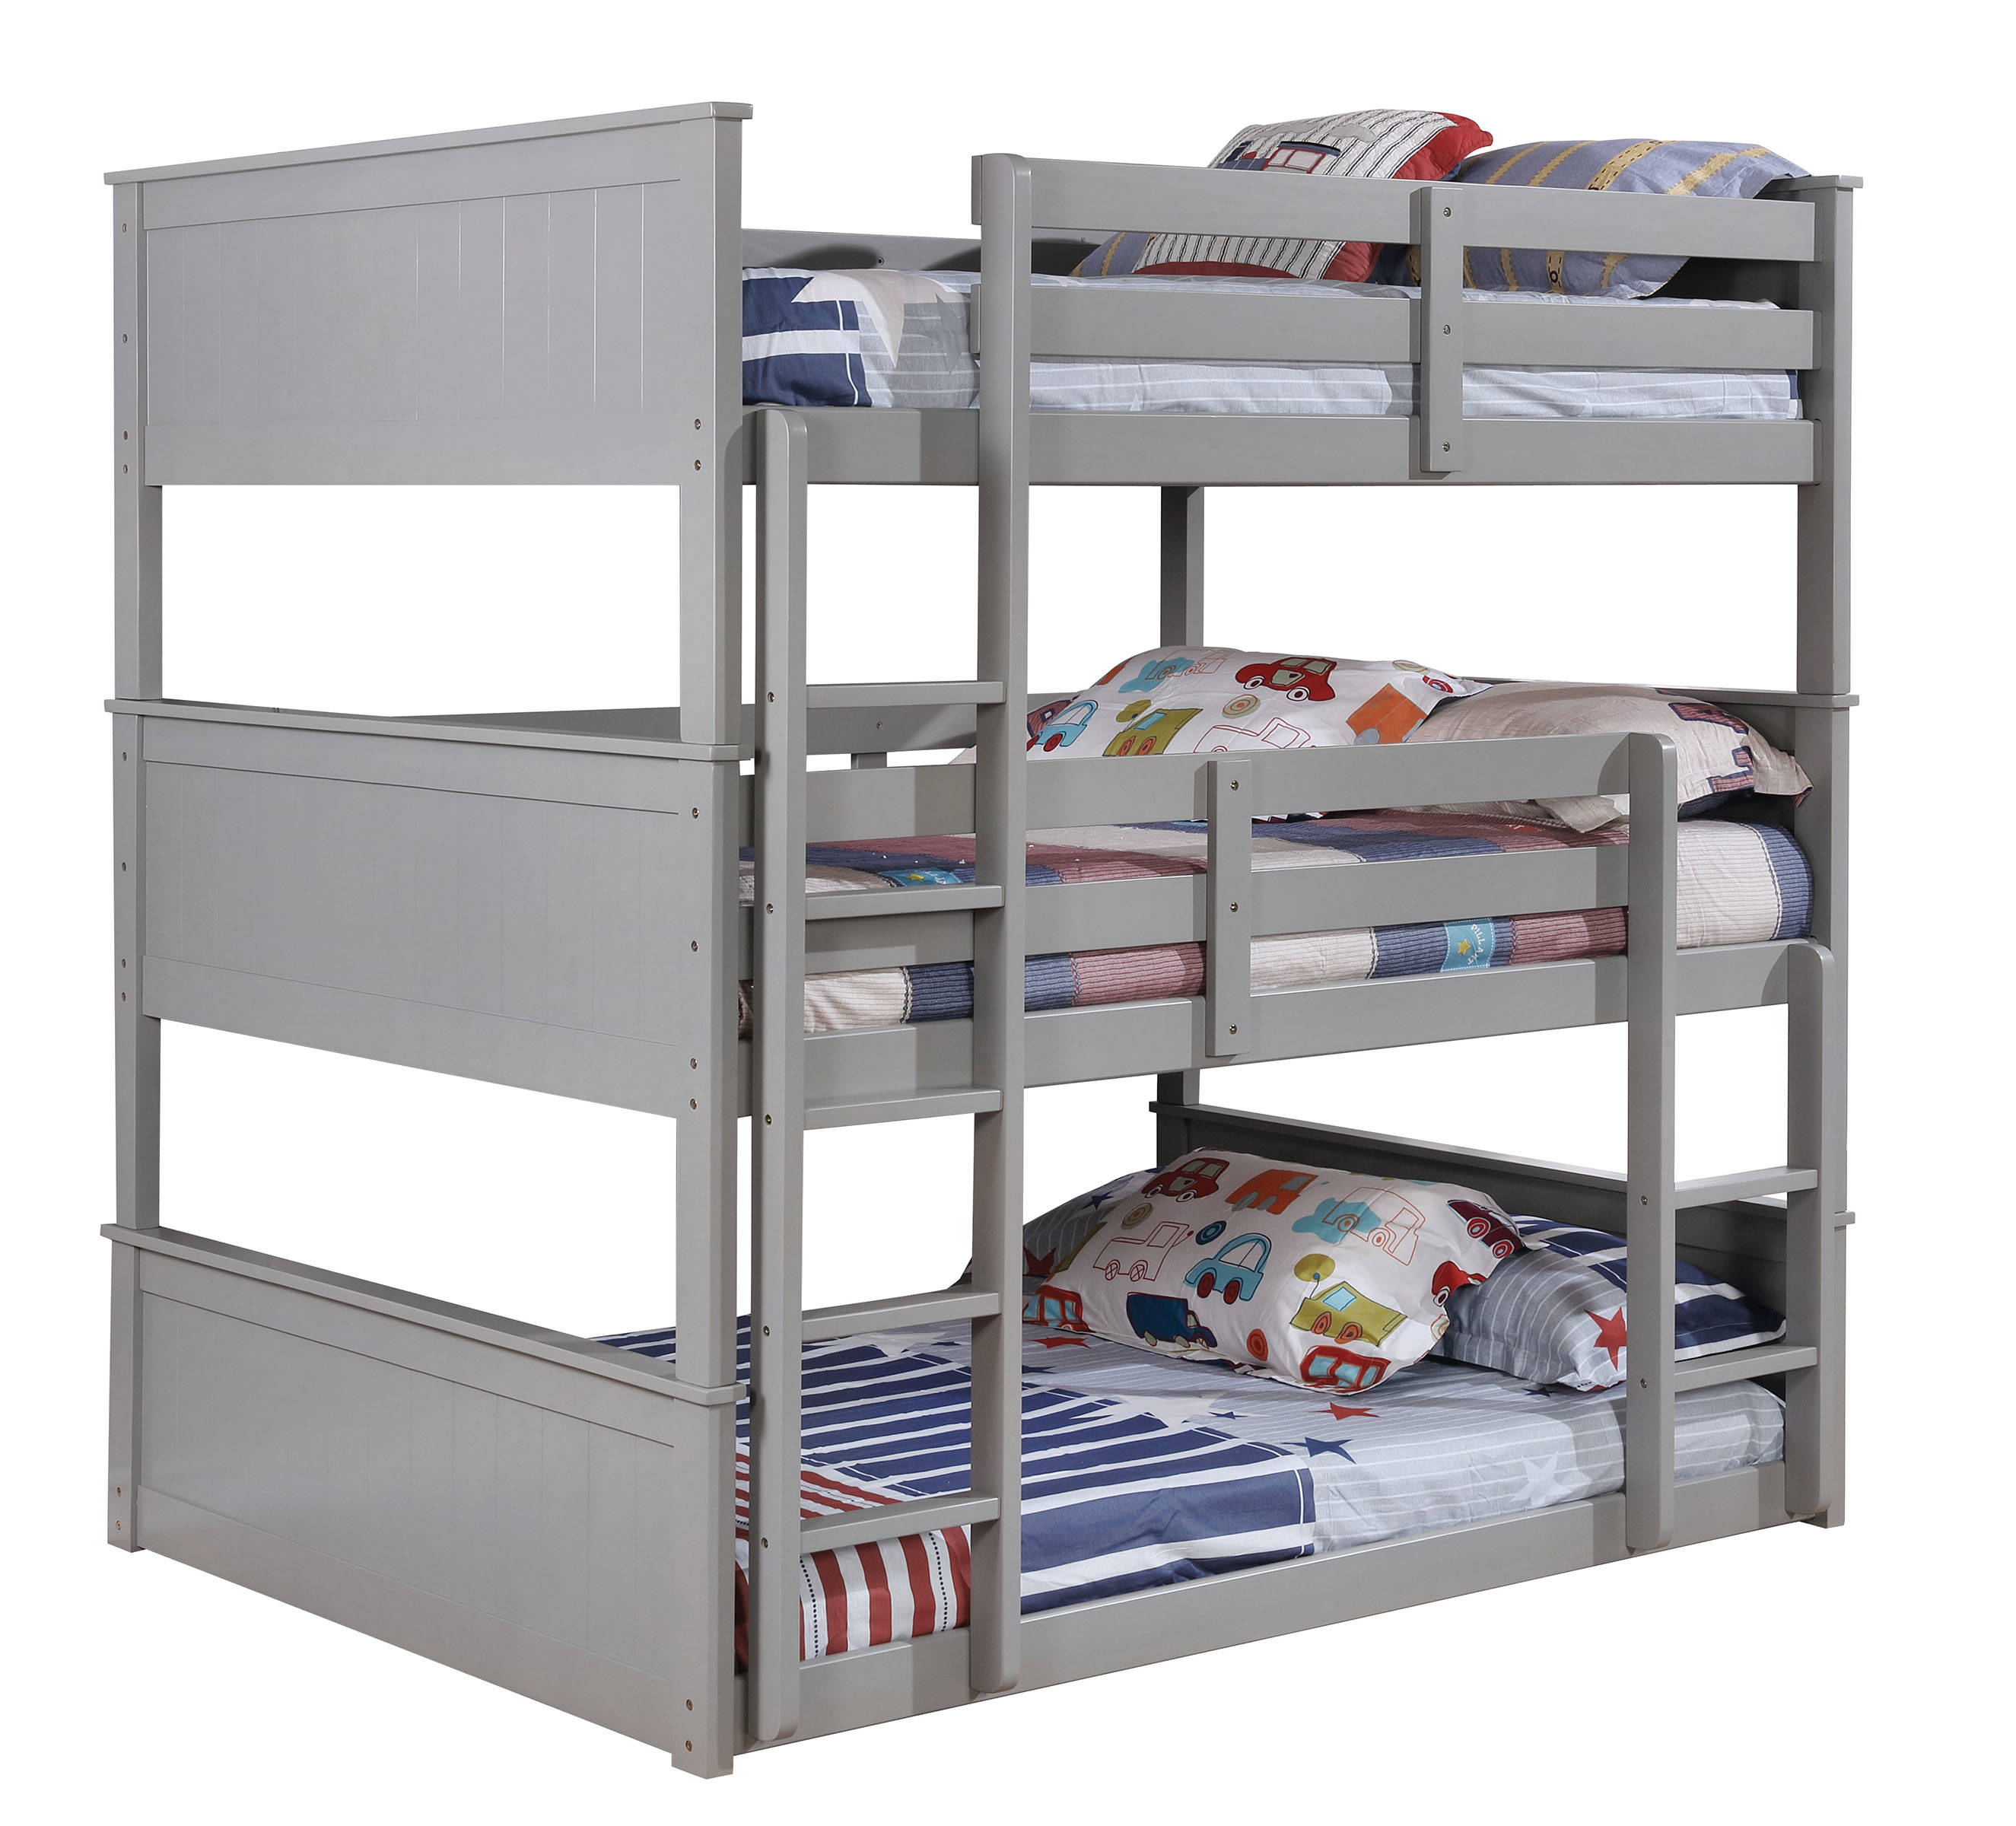 Furniture Of America Triple Bunk Bed: Furniture Of America Therese Gray Full Triple Decker Bed